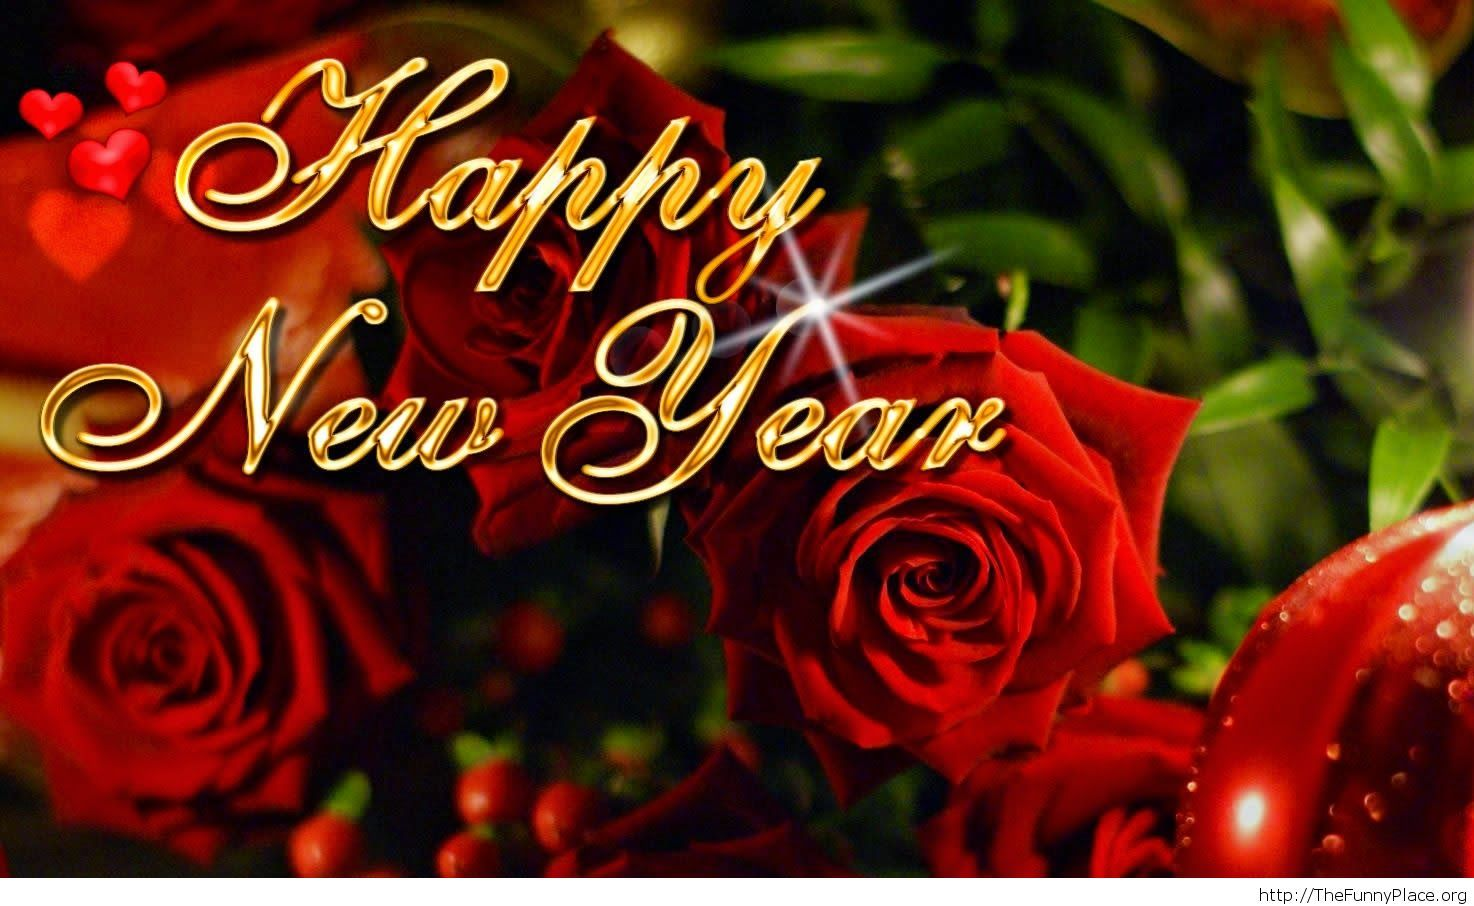 New Year roses 2015 wallpaper